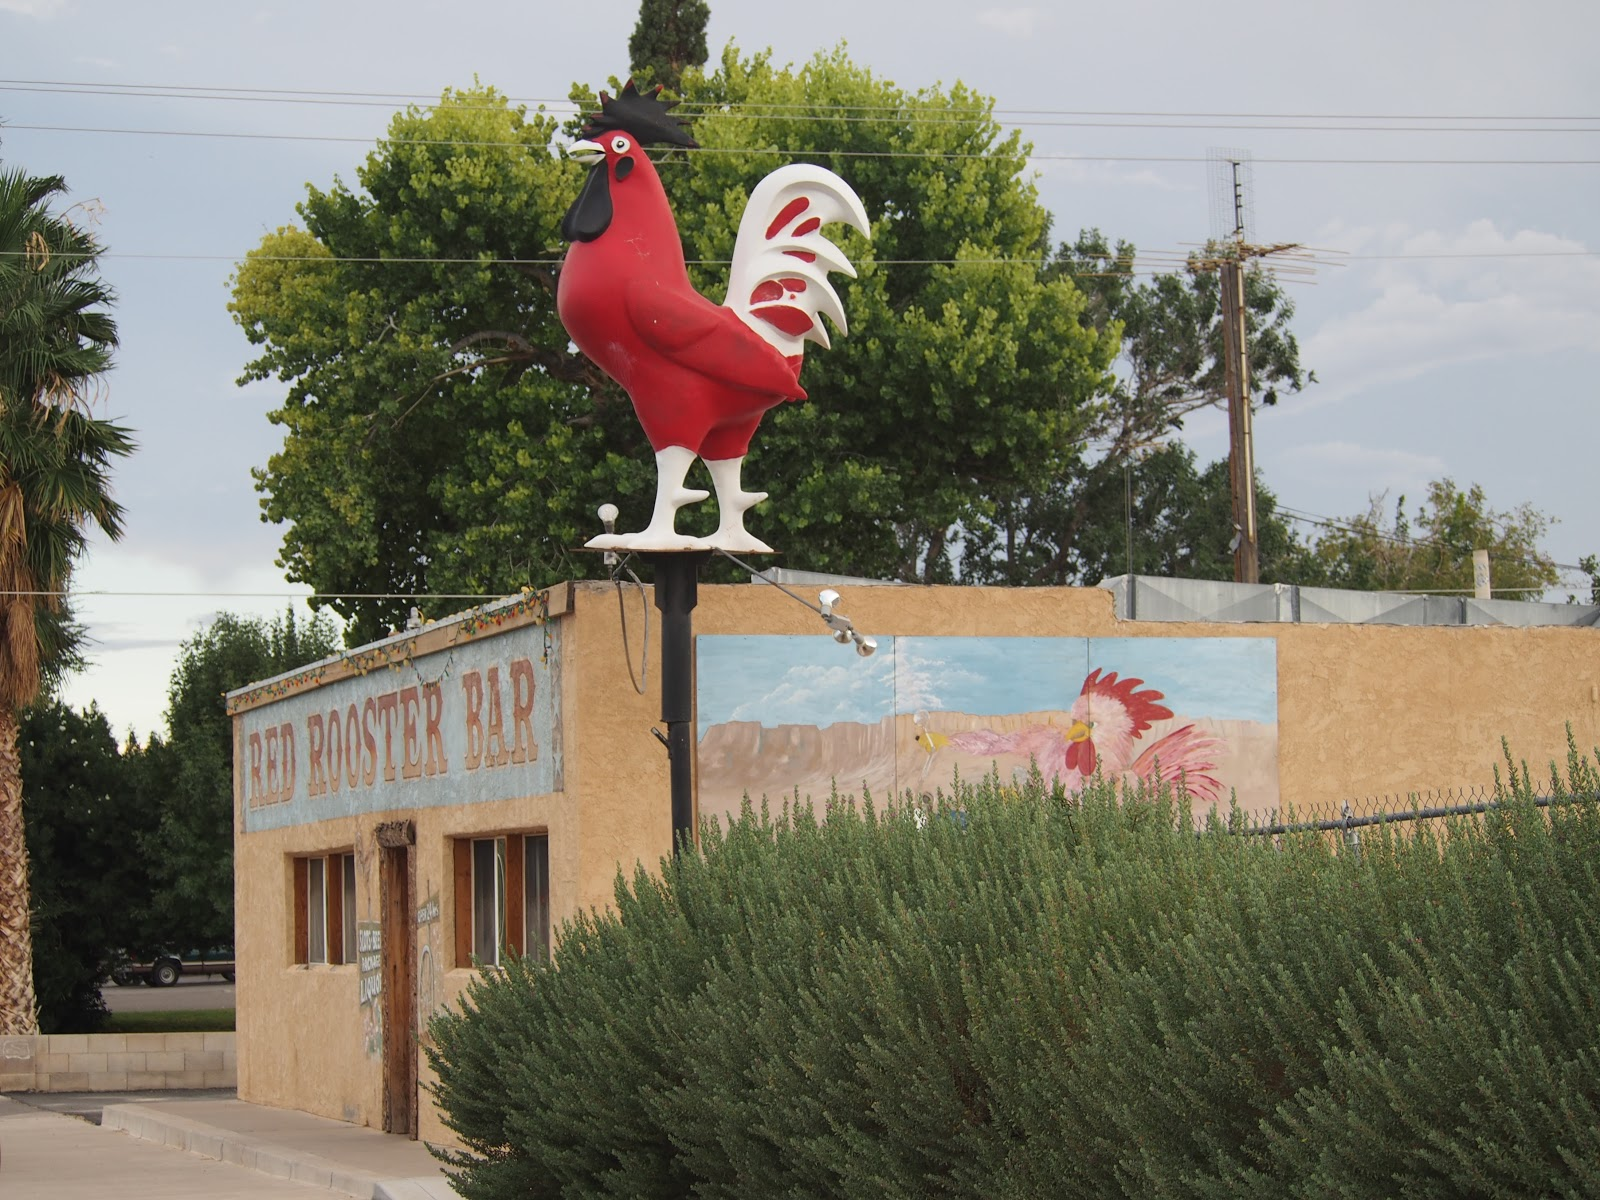 The Rooster Bar, #overton #theroosterbar #nevada #roadtrip #ontheroadagain 2014